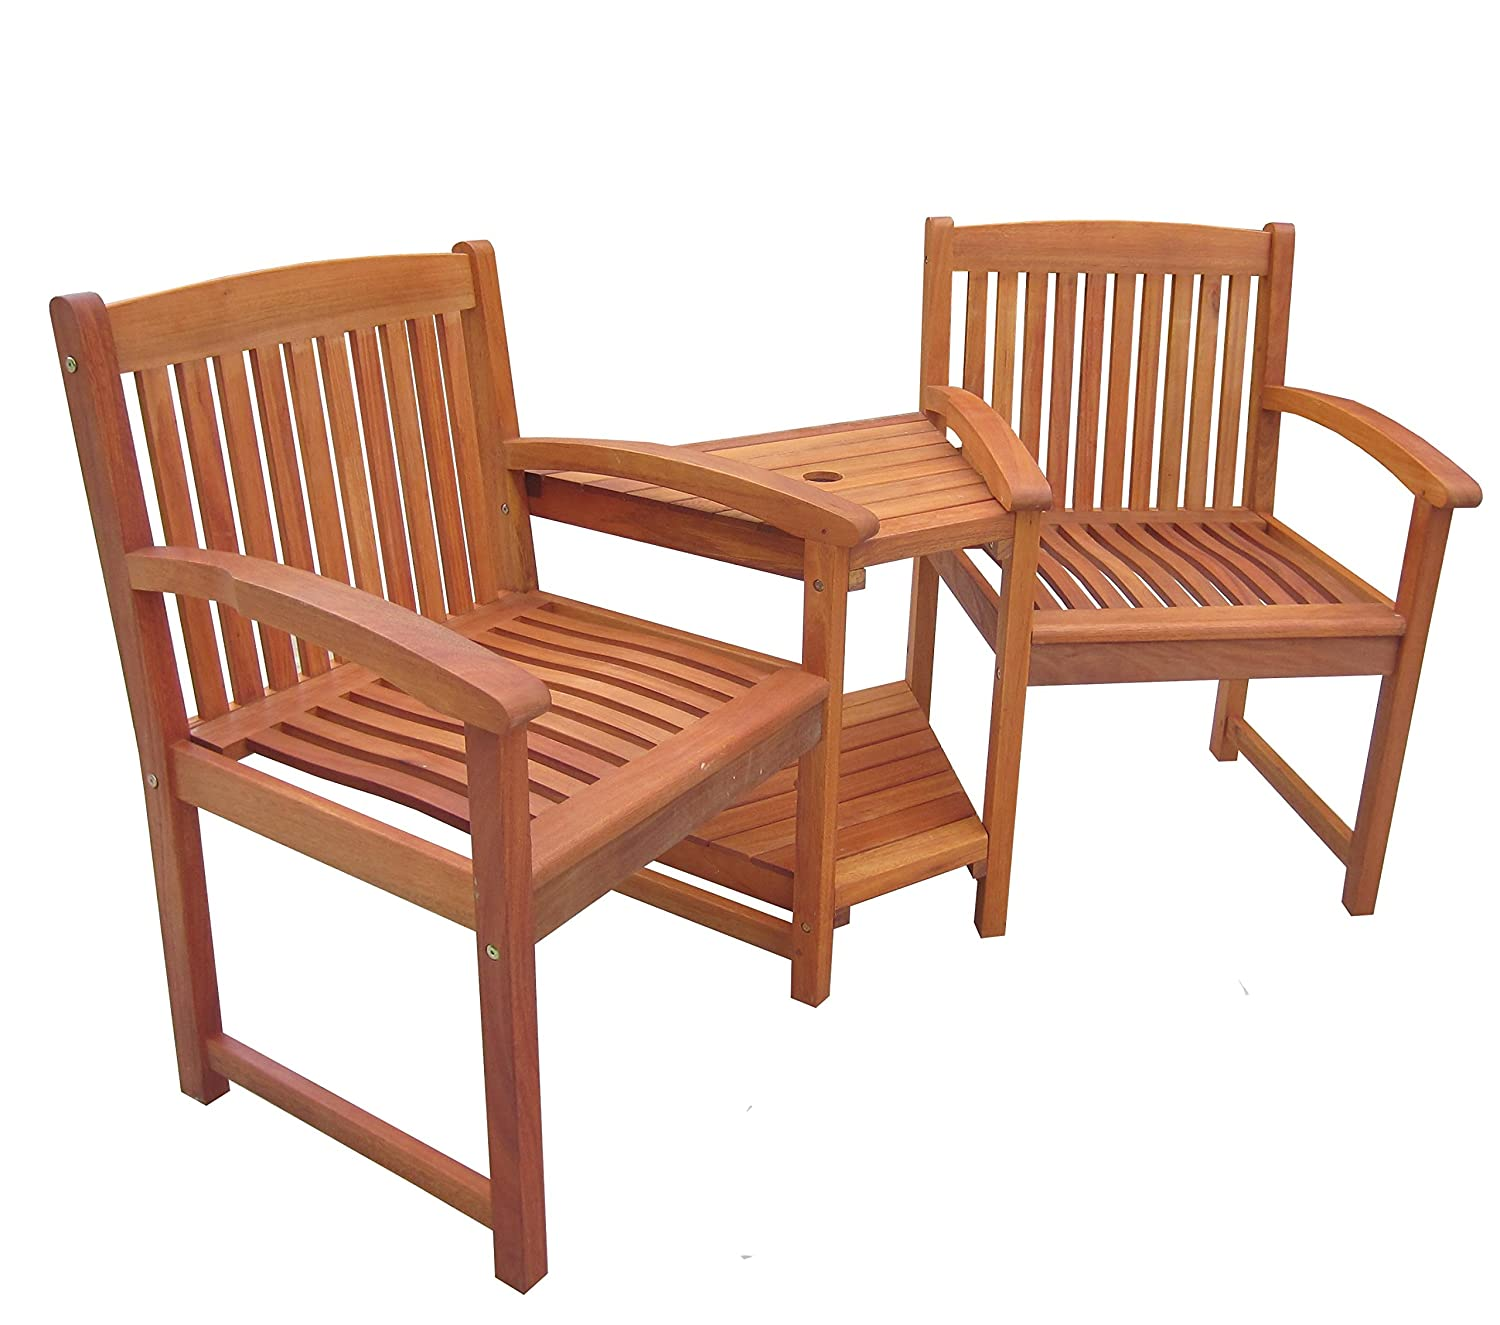 Attractive Charles Bentley Garden Wooden Companion Bench Seat Jack And Jill Love Seat  Outdoor Furniture Patio Set: Amazon.co.uk: Garden U0026 Outdoors